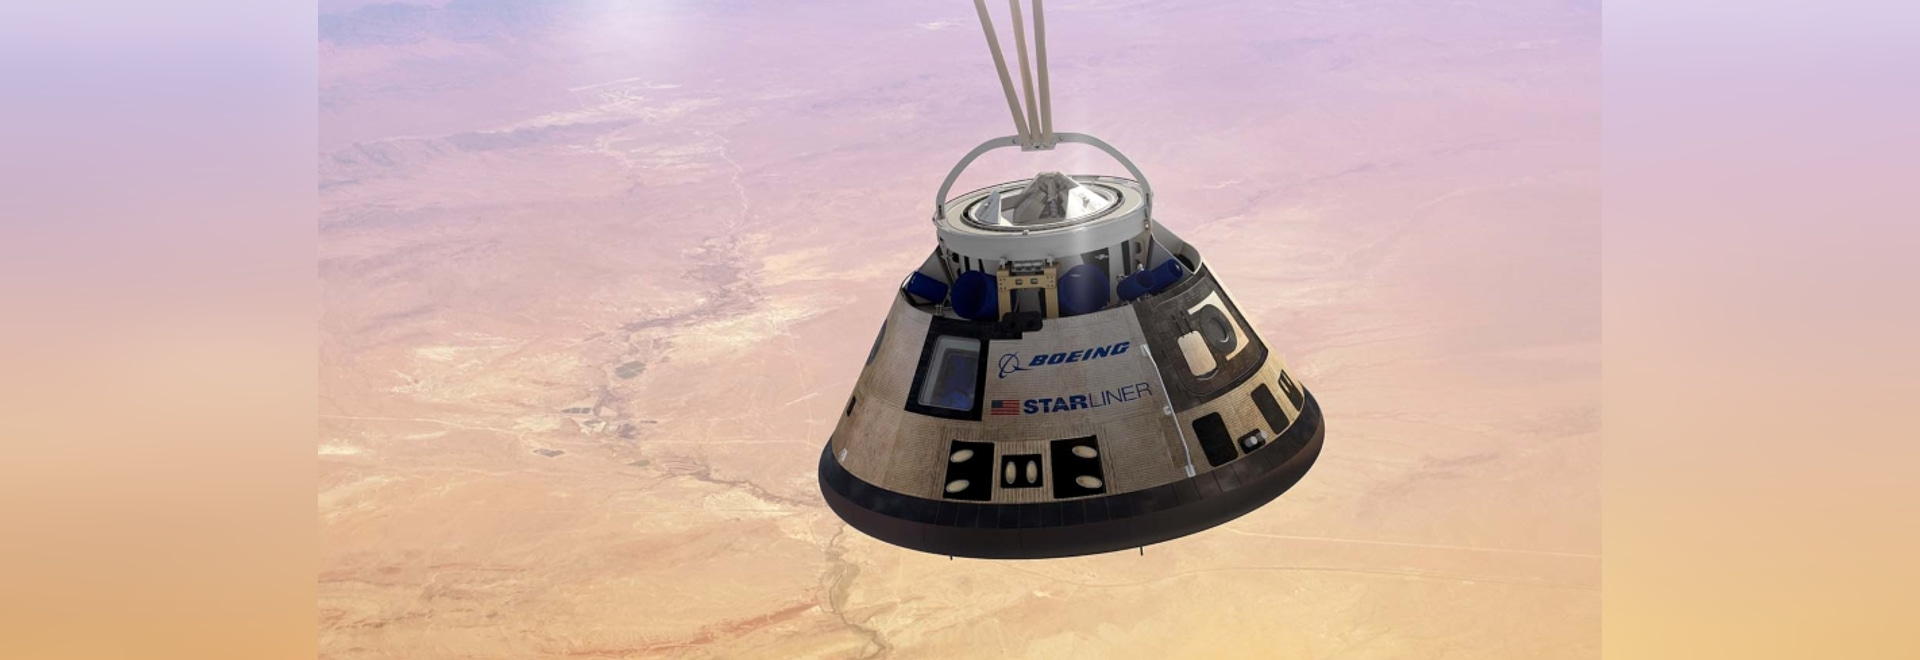 Starliner descending to the US Army's White Sands Missile Range